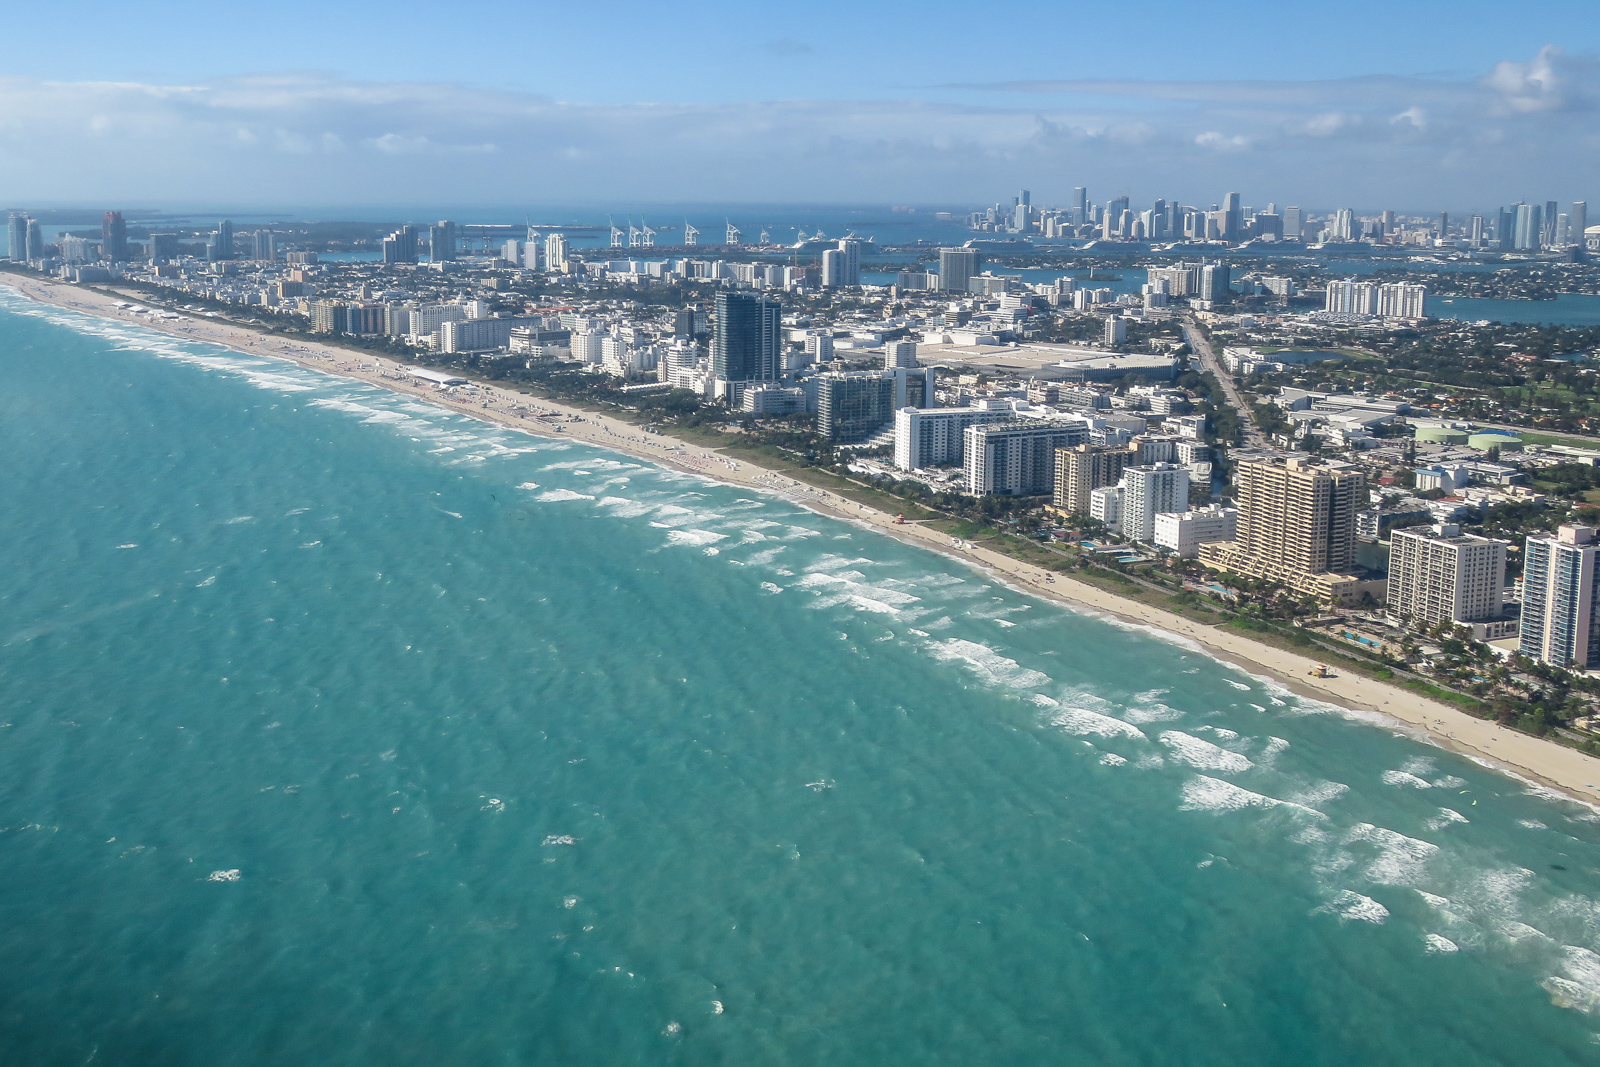 Top things to do in Miami: take a Miami Air Tour and see South Beach and the city from the air. Fly along south beach at 500ft on a Miami flightseeing tour by plane.